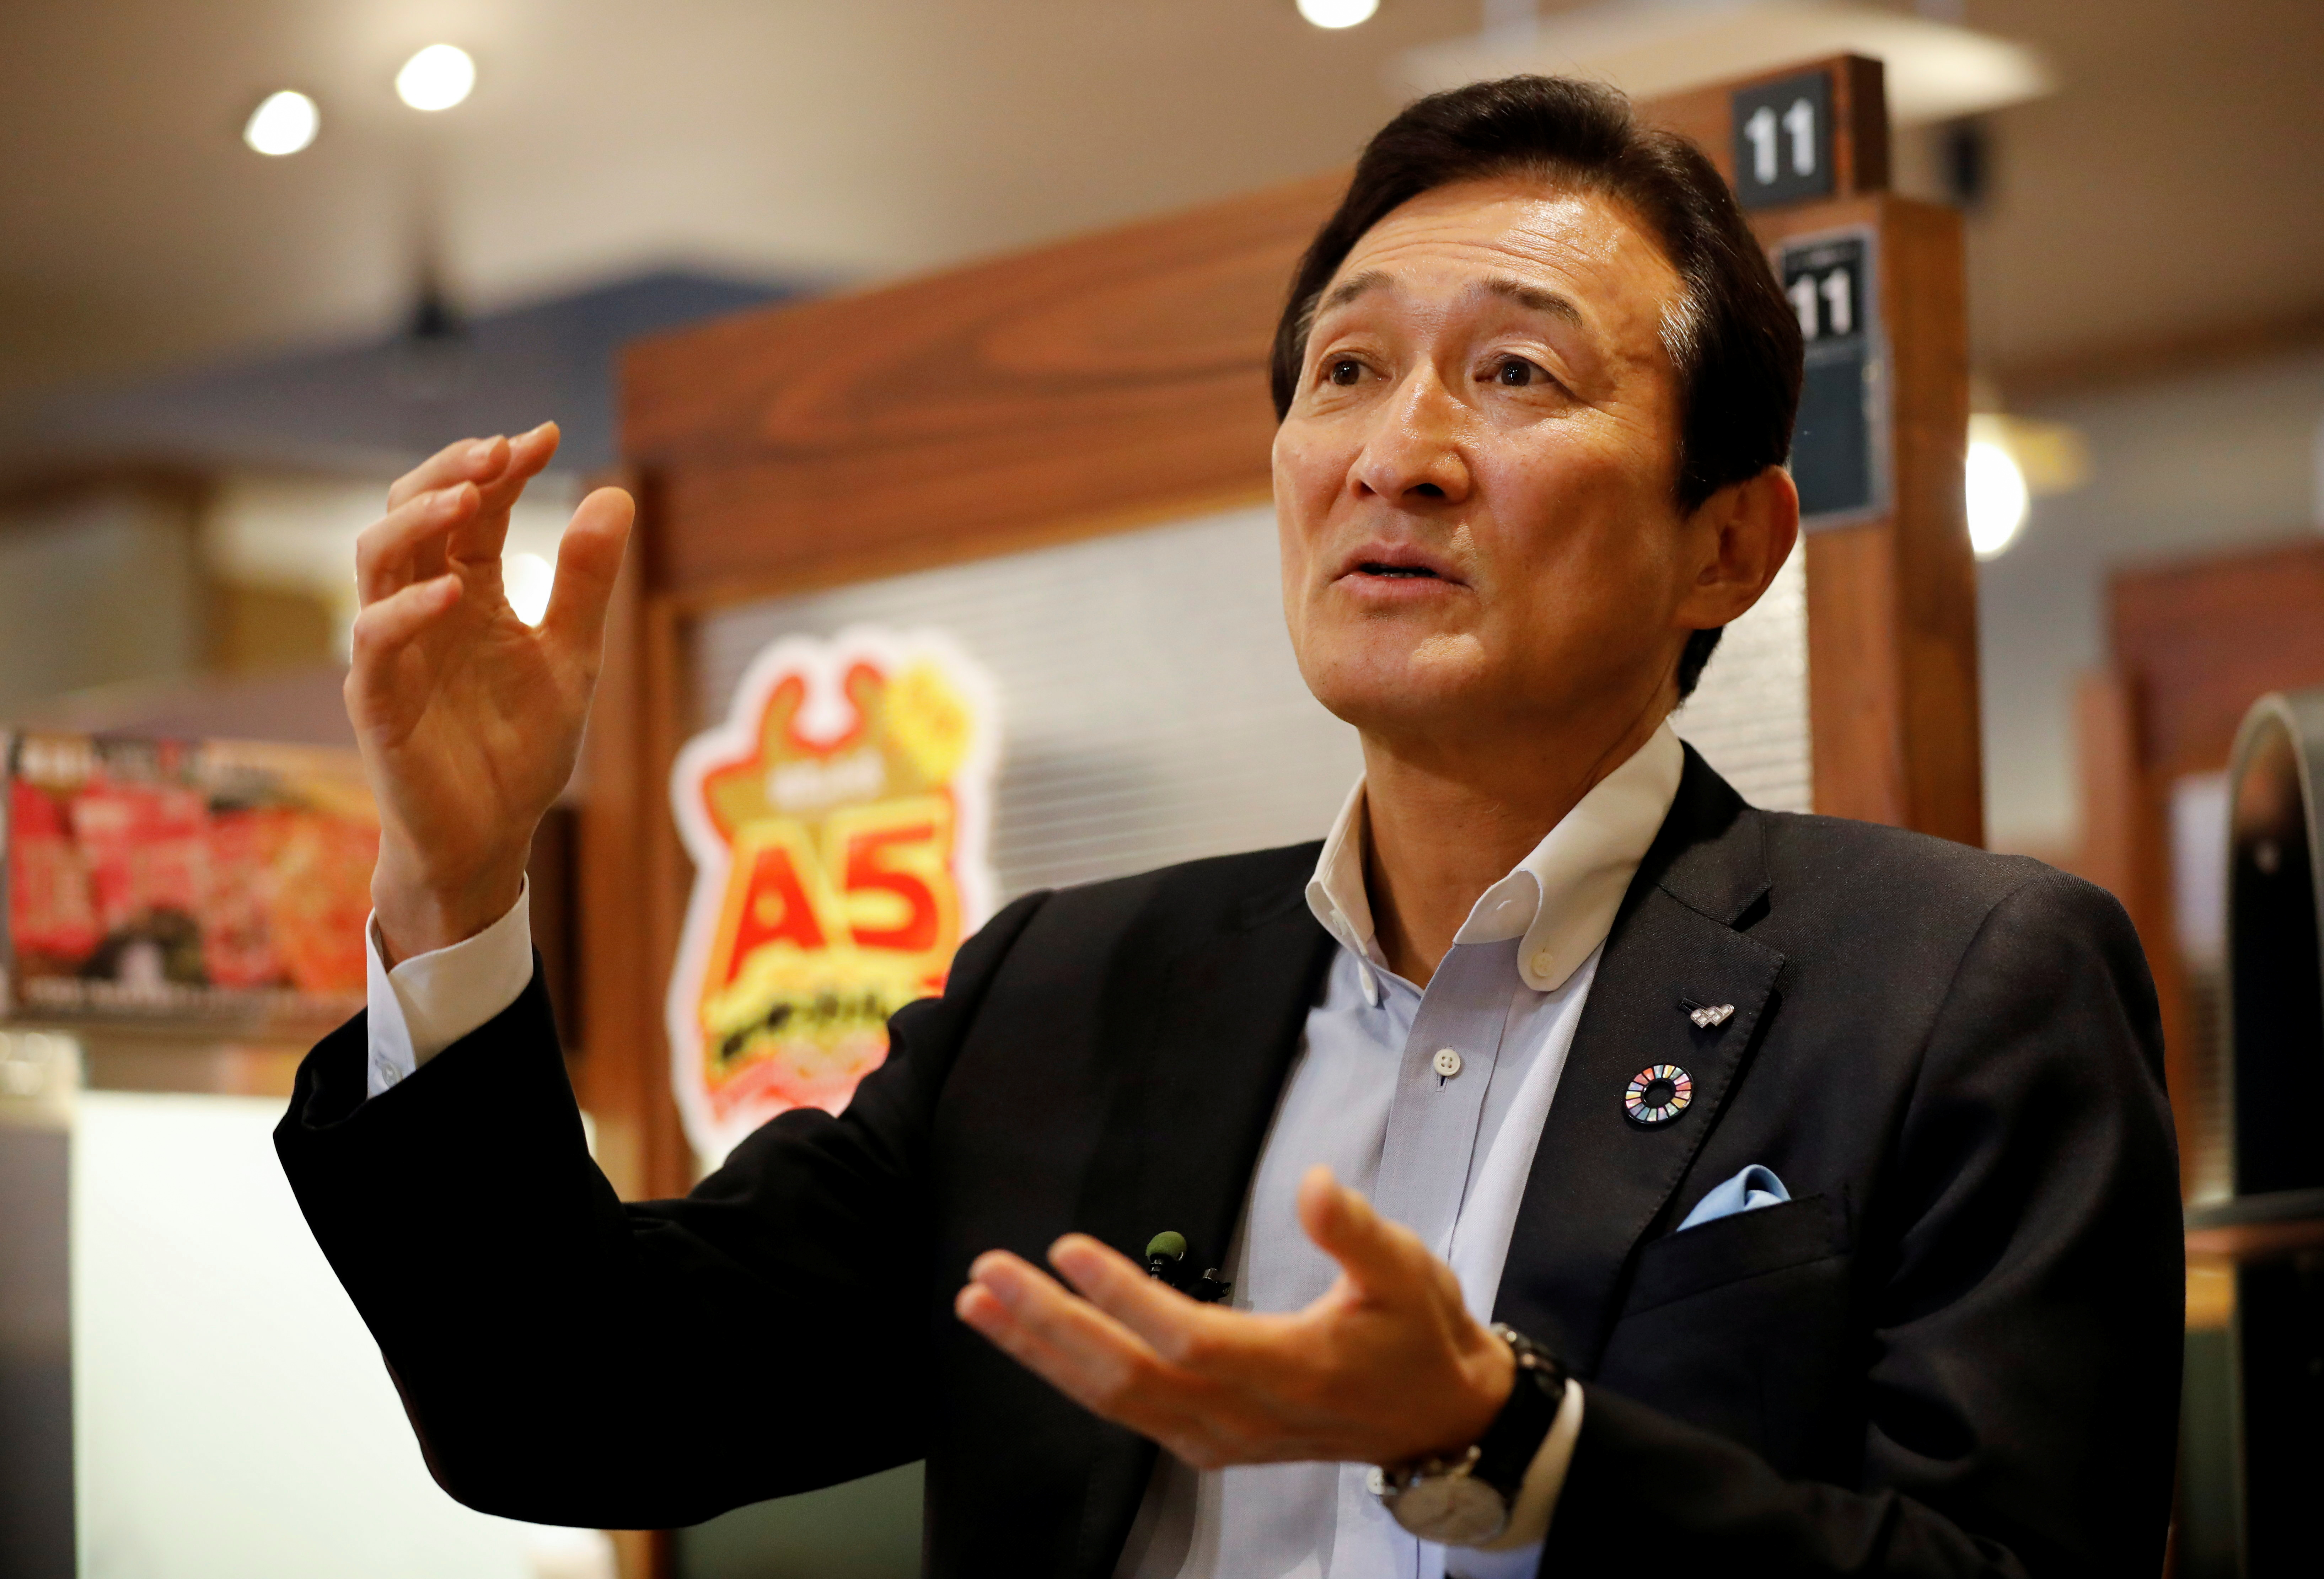 Miki Watanabe, Chairman and CEO of Watami Co. speaks during an interview with Reuters at the company's yakiniku barbecue restaurant named 'Yakiniku no Watami', in Tokyo, Japan September 15, 2021. Picture taken September 15, 2021.  REUTERS/Issei Kato